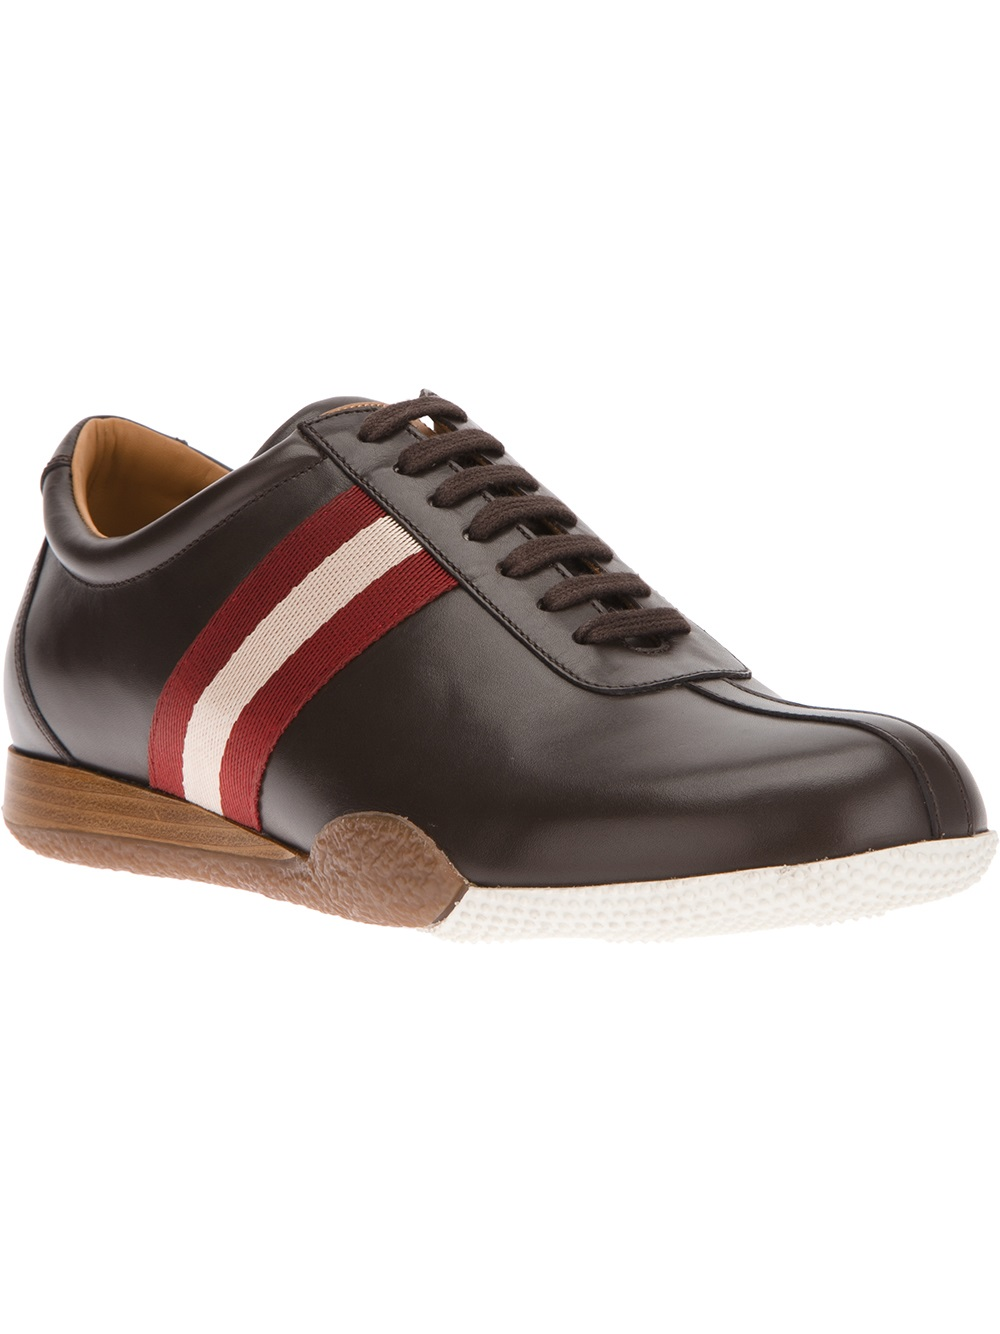 Bally Mens Brown Shoes